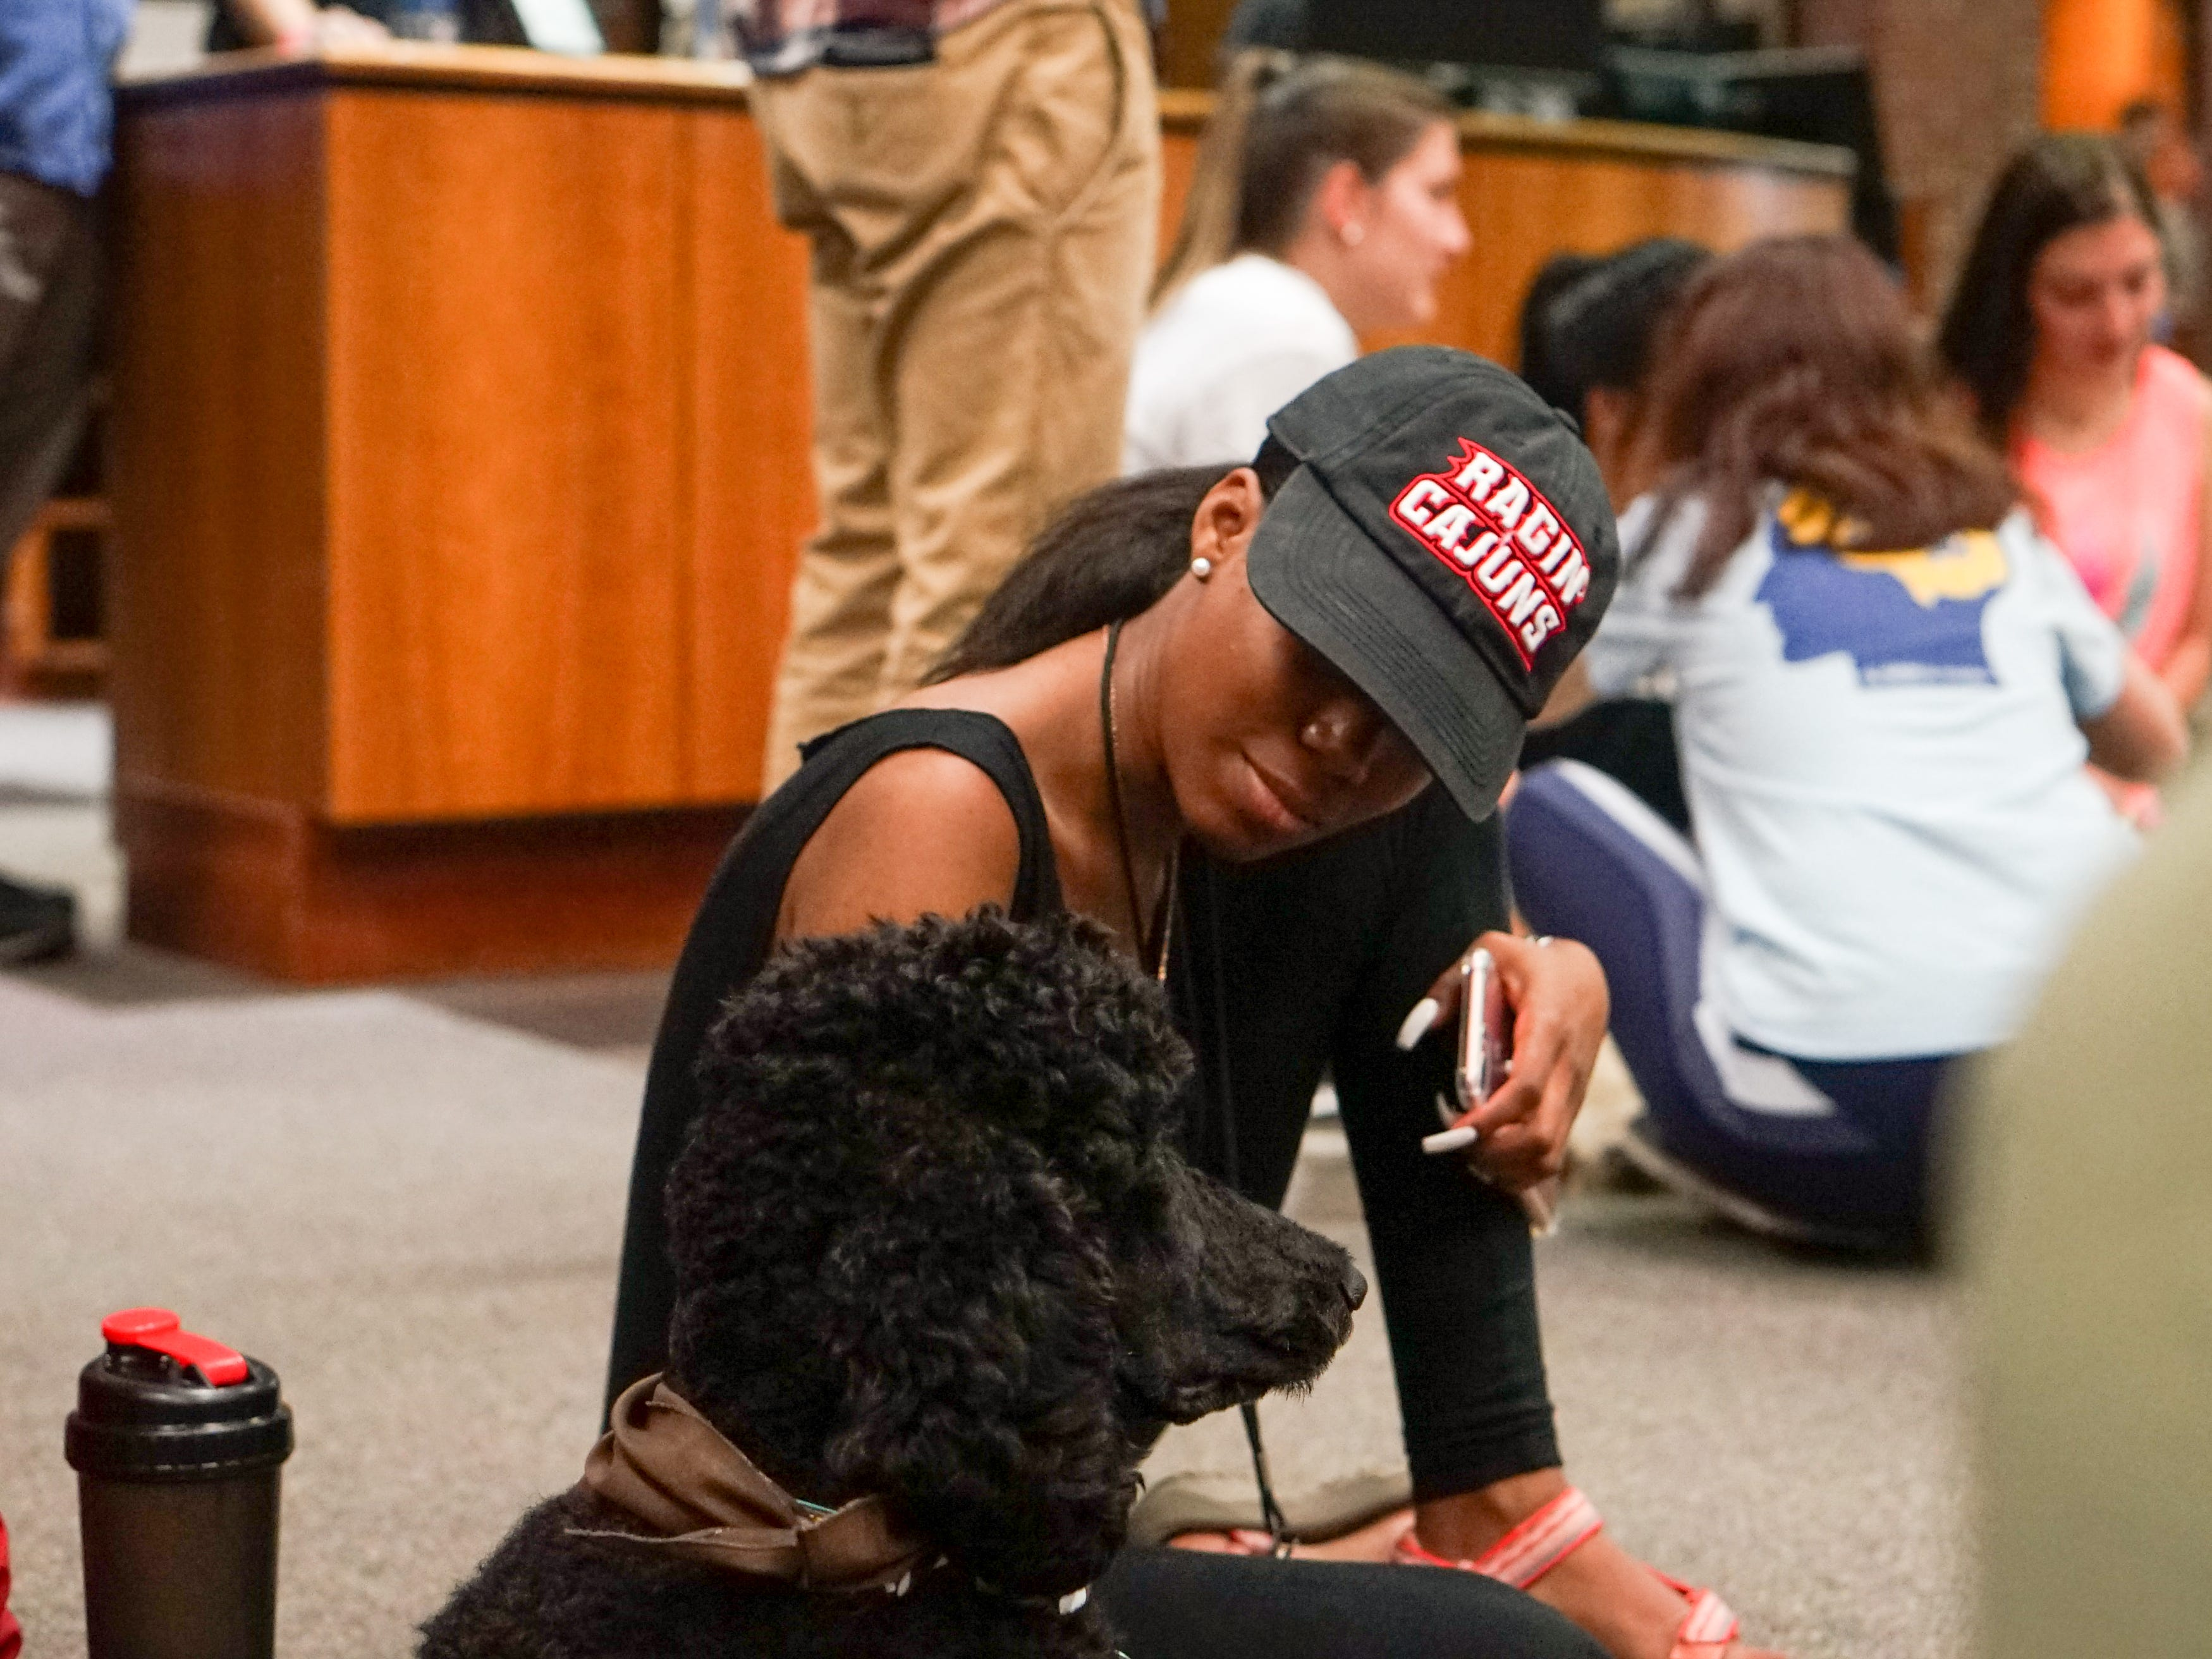 Students meet therapy dogs in the Edith Garland Dupré Library Wednesday, May 8, 2019. The University of Louisiana at Lafayette helps students to relieve stress during finals week by bringing therapy animals, to the library as part of Stress Relief Week. The therapy dogs are provided by Pet Partners of Acadiana, a non-profit organization with registered therapy animals, including birds, miniature horses, rabbits and  llamas.